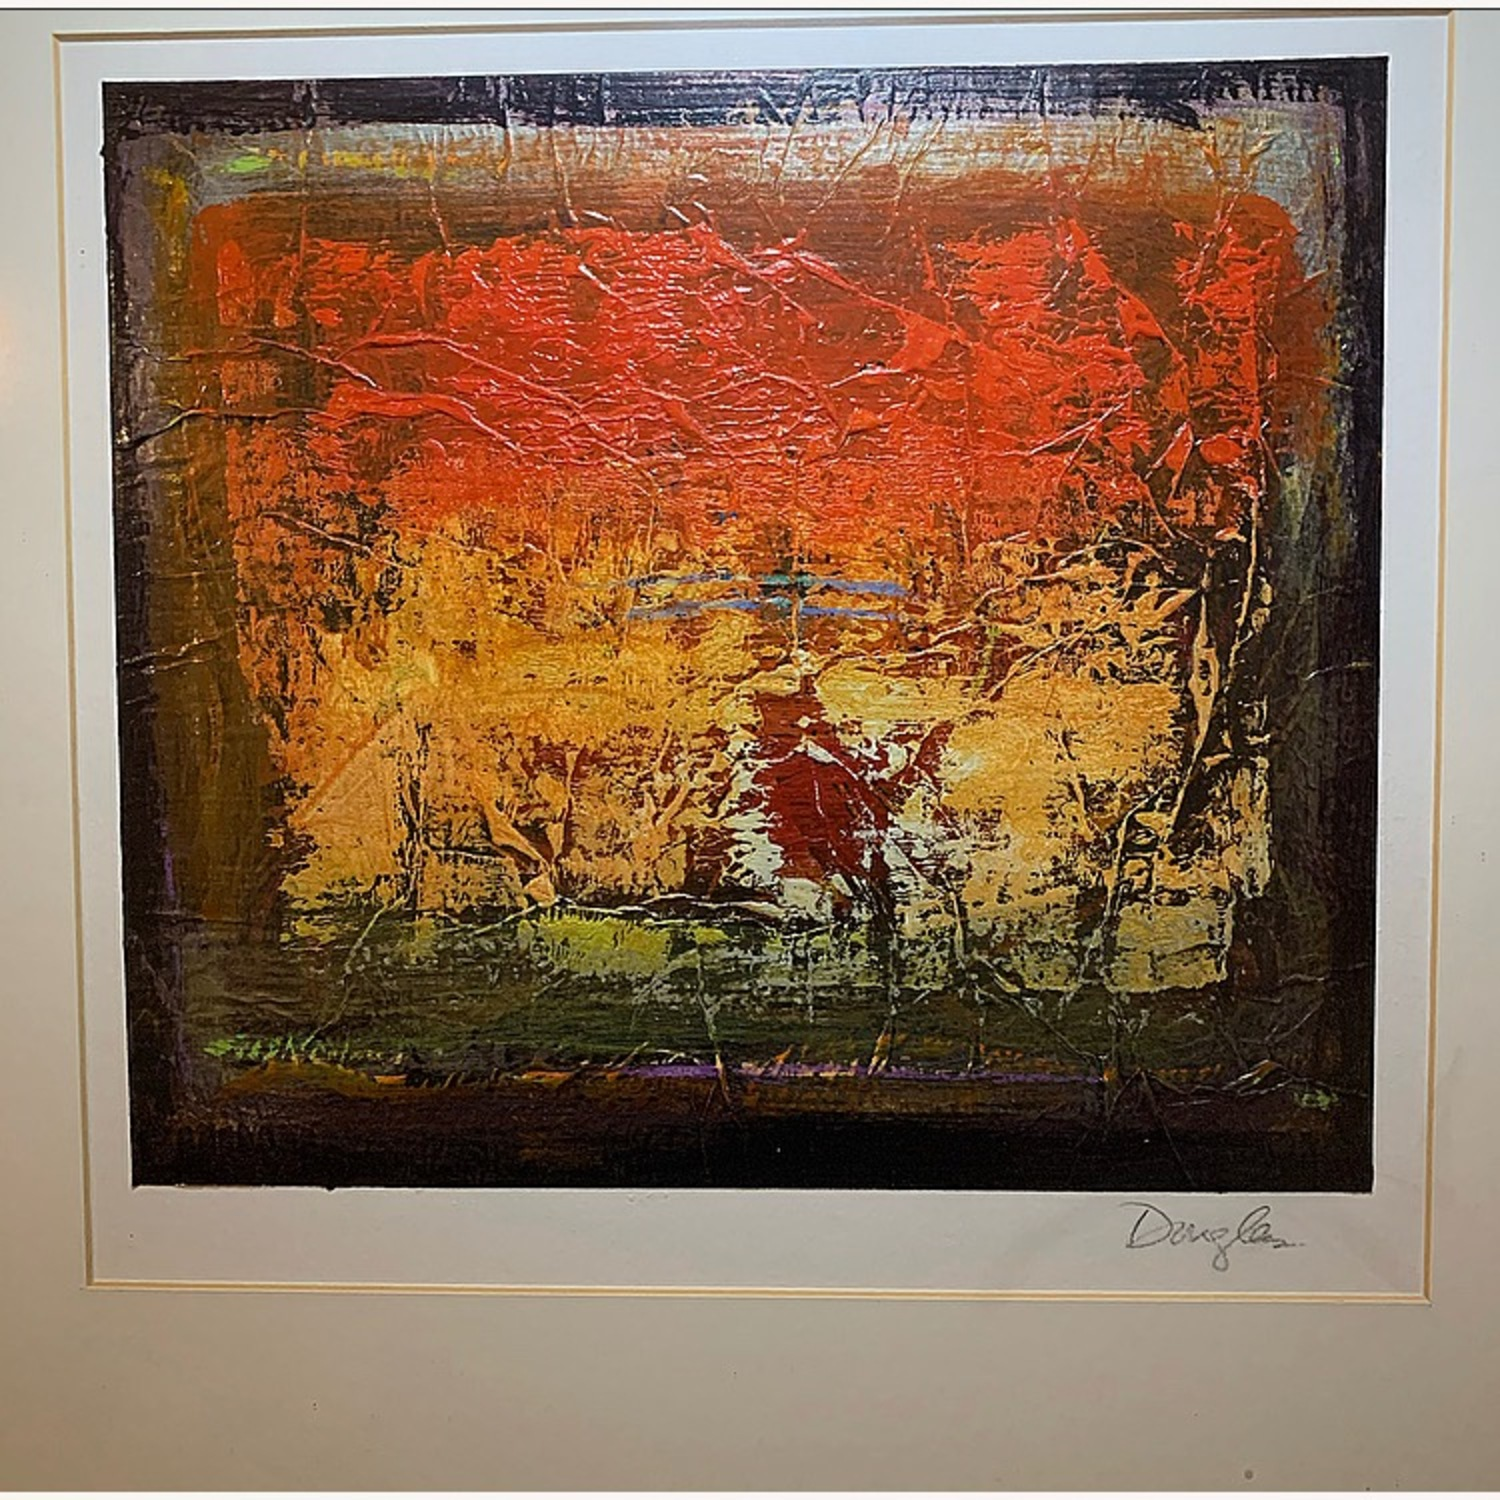 John Douglas Original Oil on Metal Paintings - image-2